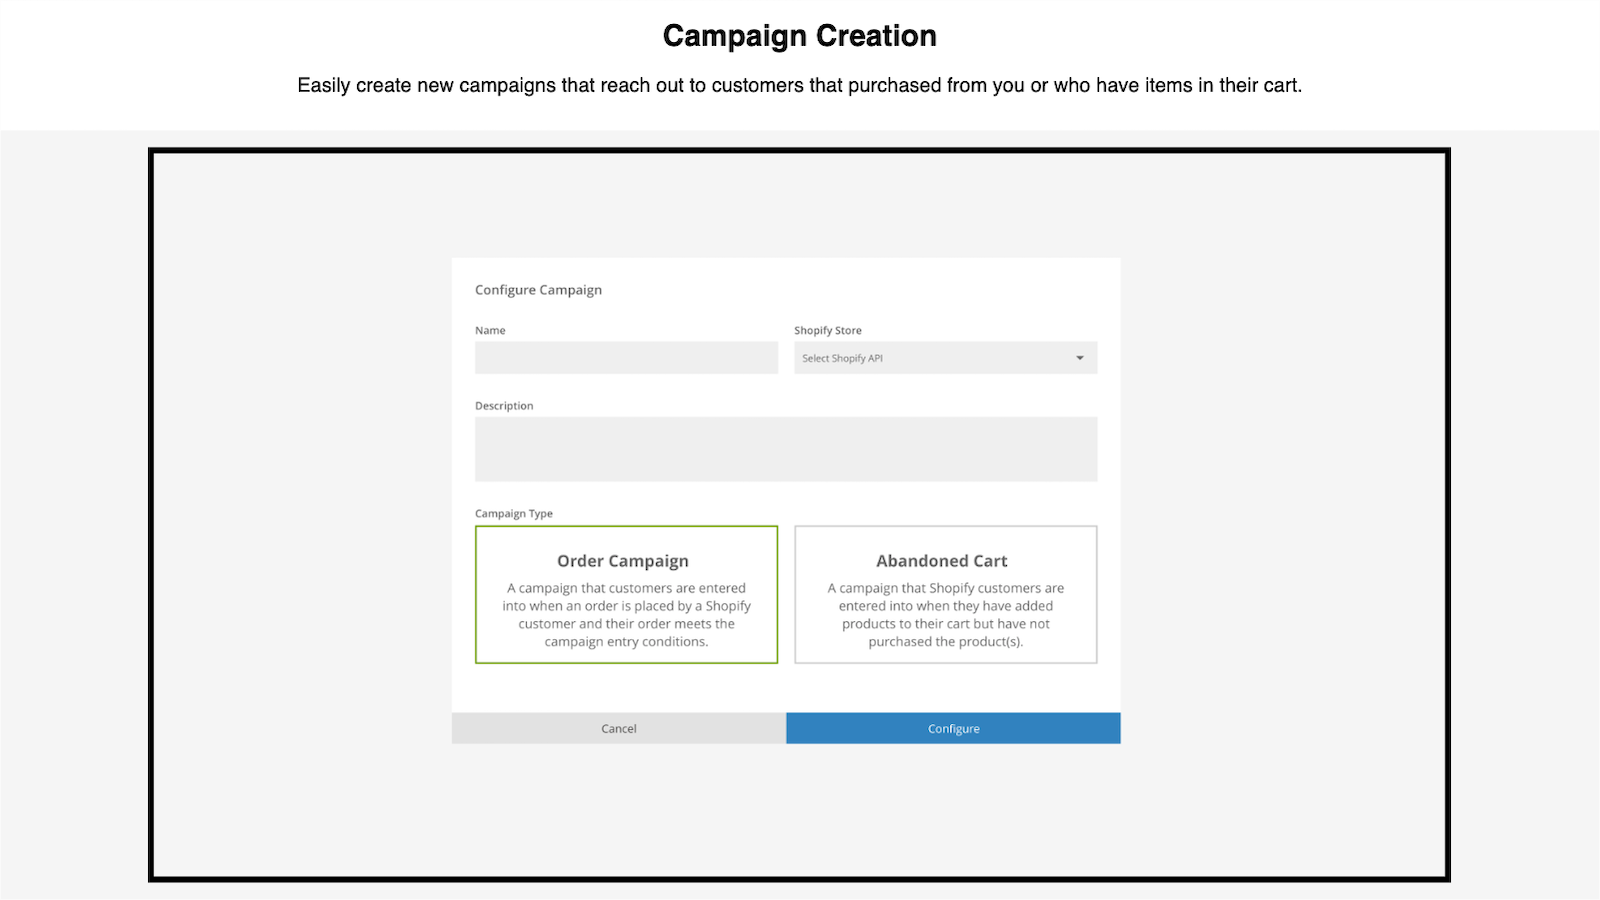 Configuring a campaign to be triggered by a Shopify purchase